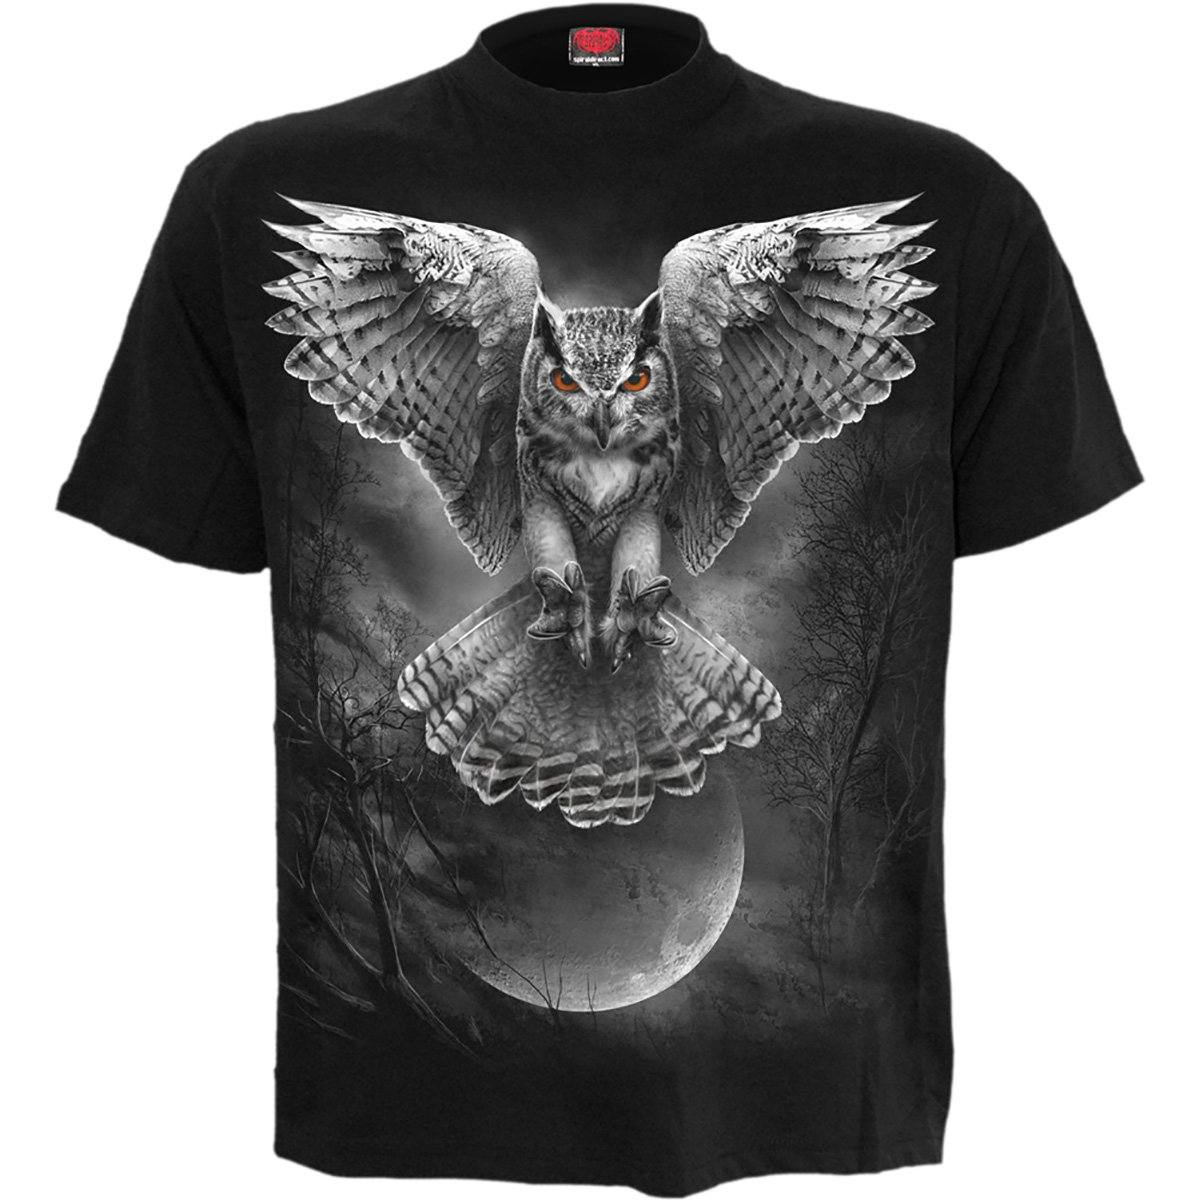 Majestic Hunting Owl Men's Black T-Shirt